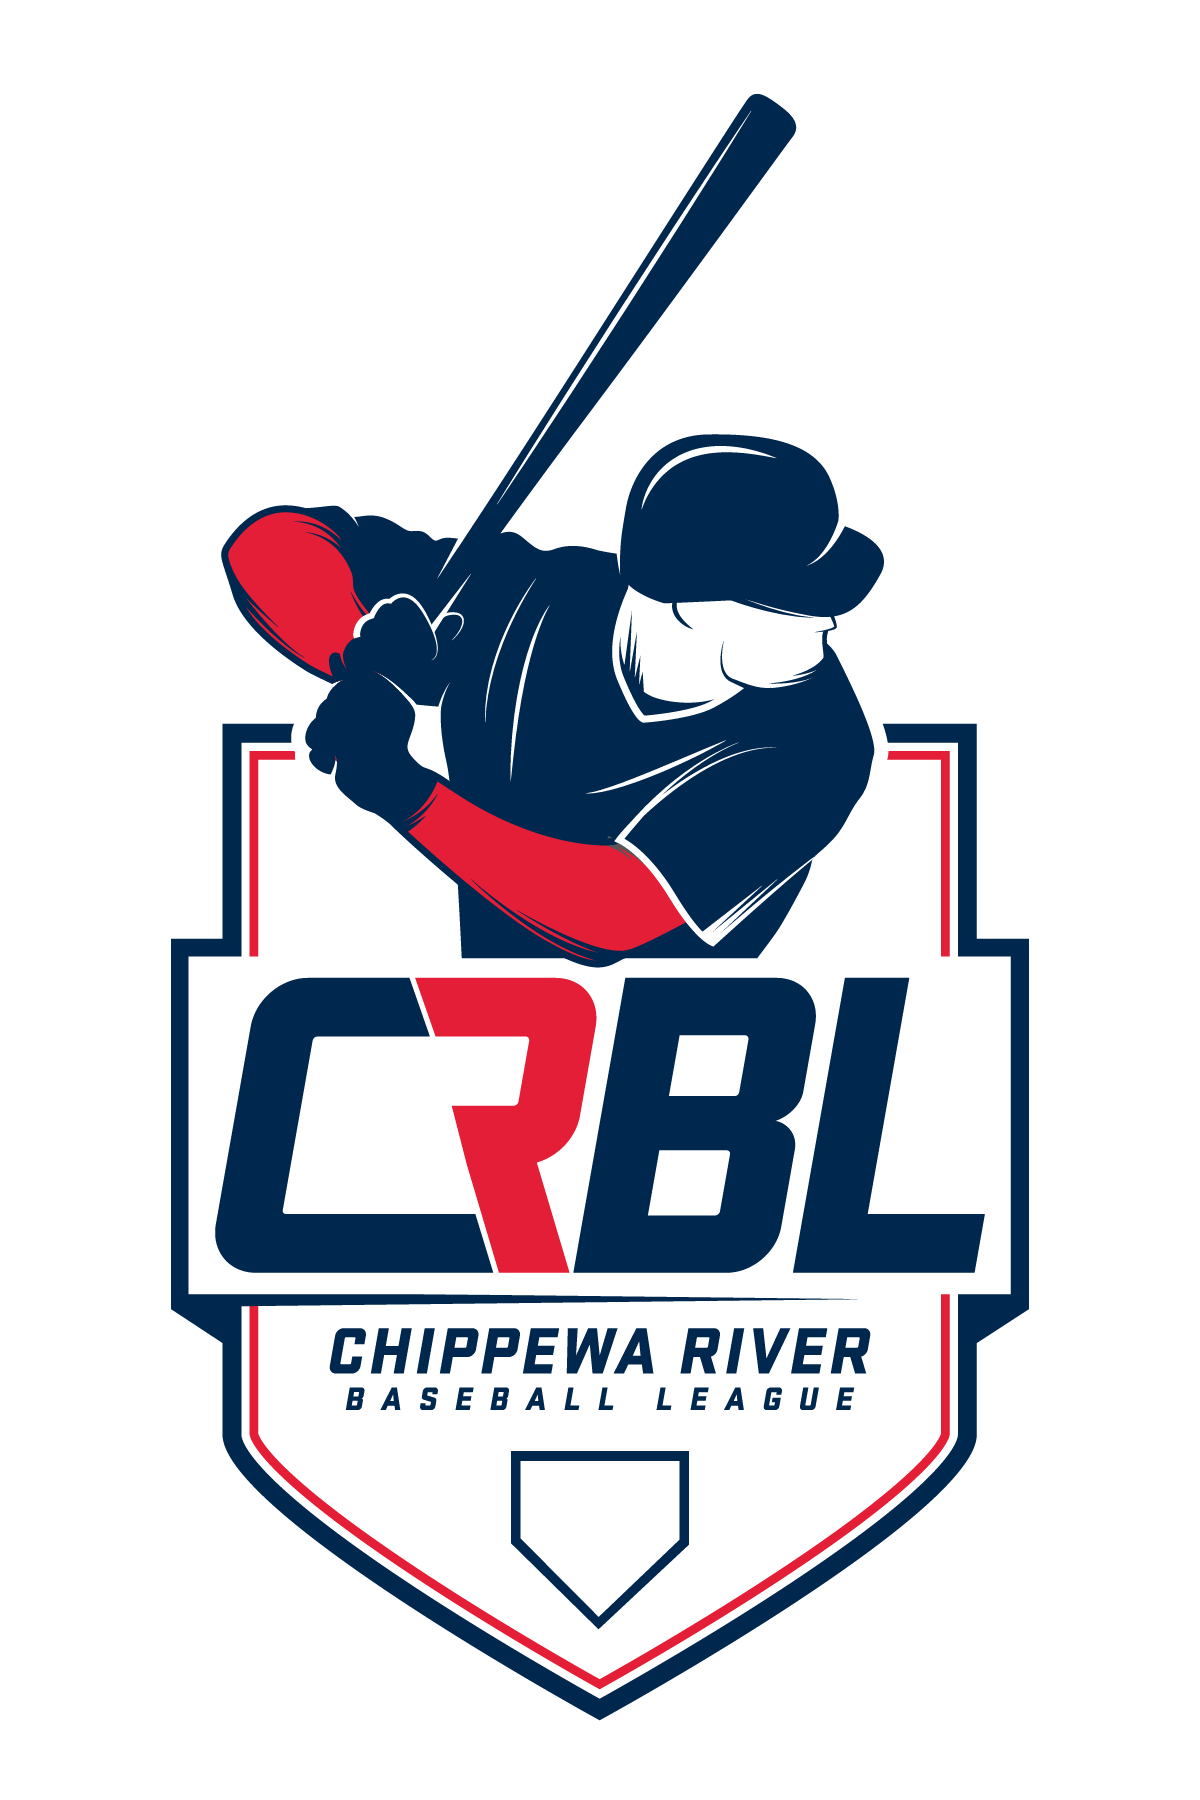 Chippewa Rivers Baseball League